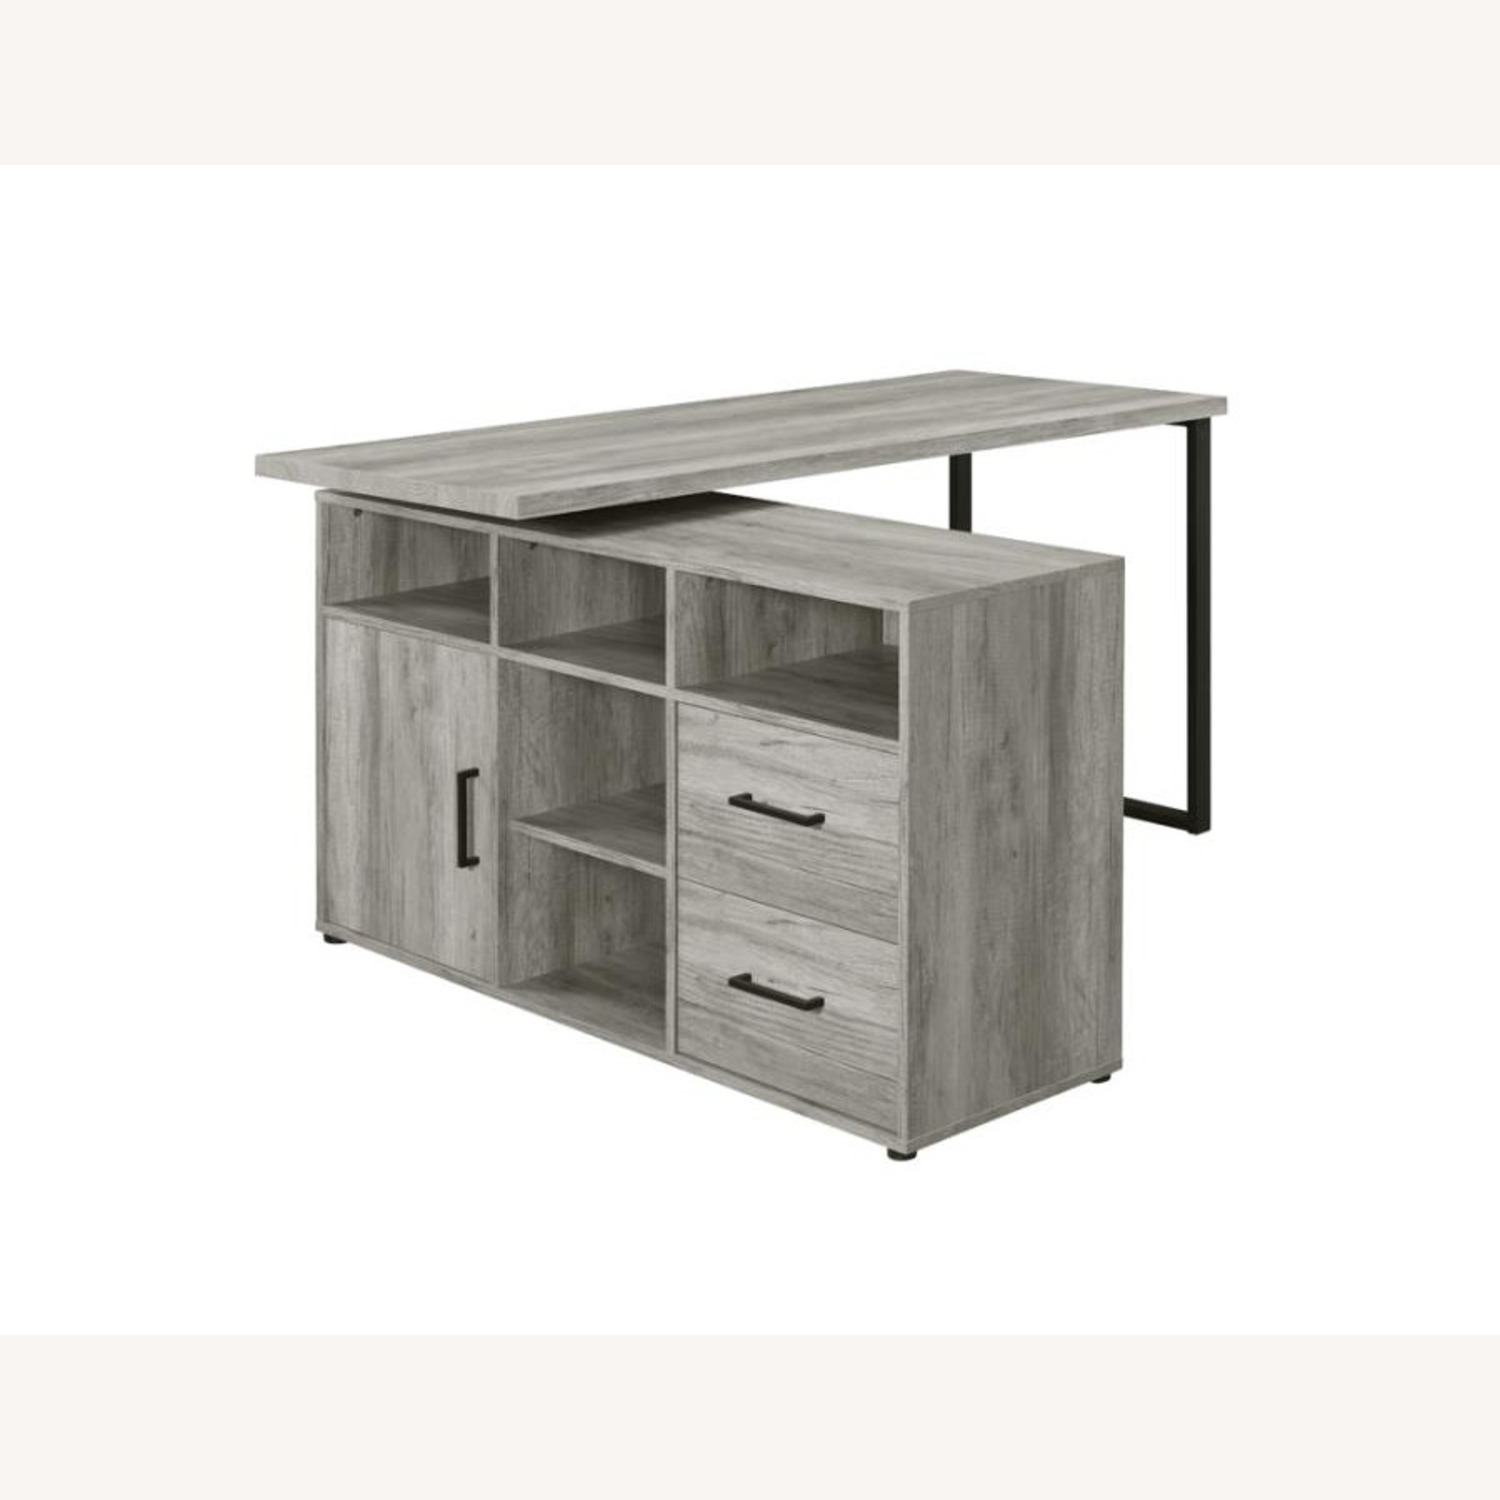 L-Shaped Office Desk In Grey Driftwood Finish - image-1